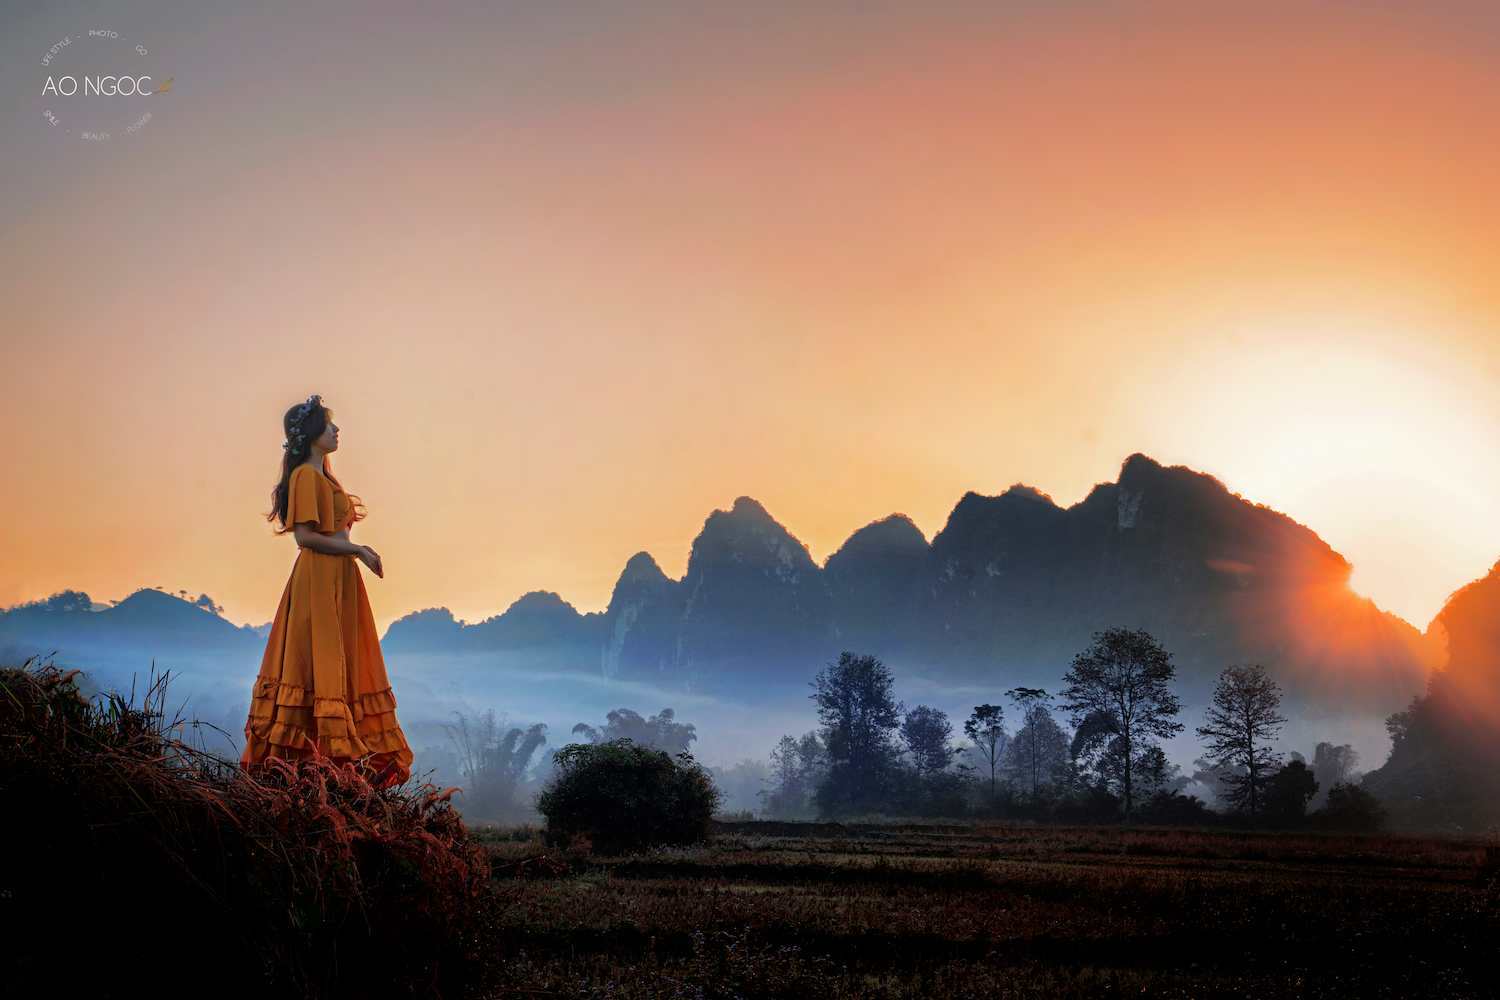 Sea of cloud in Cao Bang. Photo: NVCC